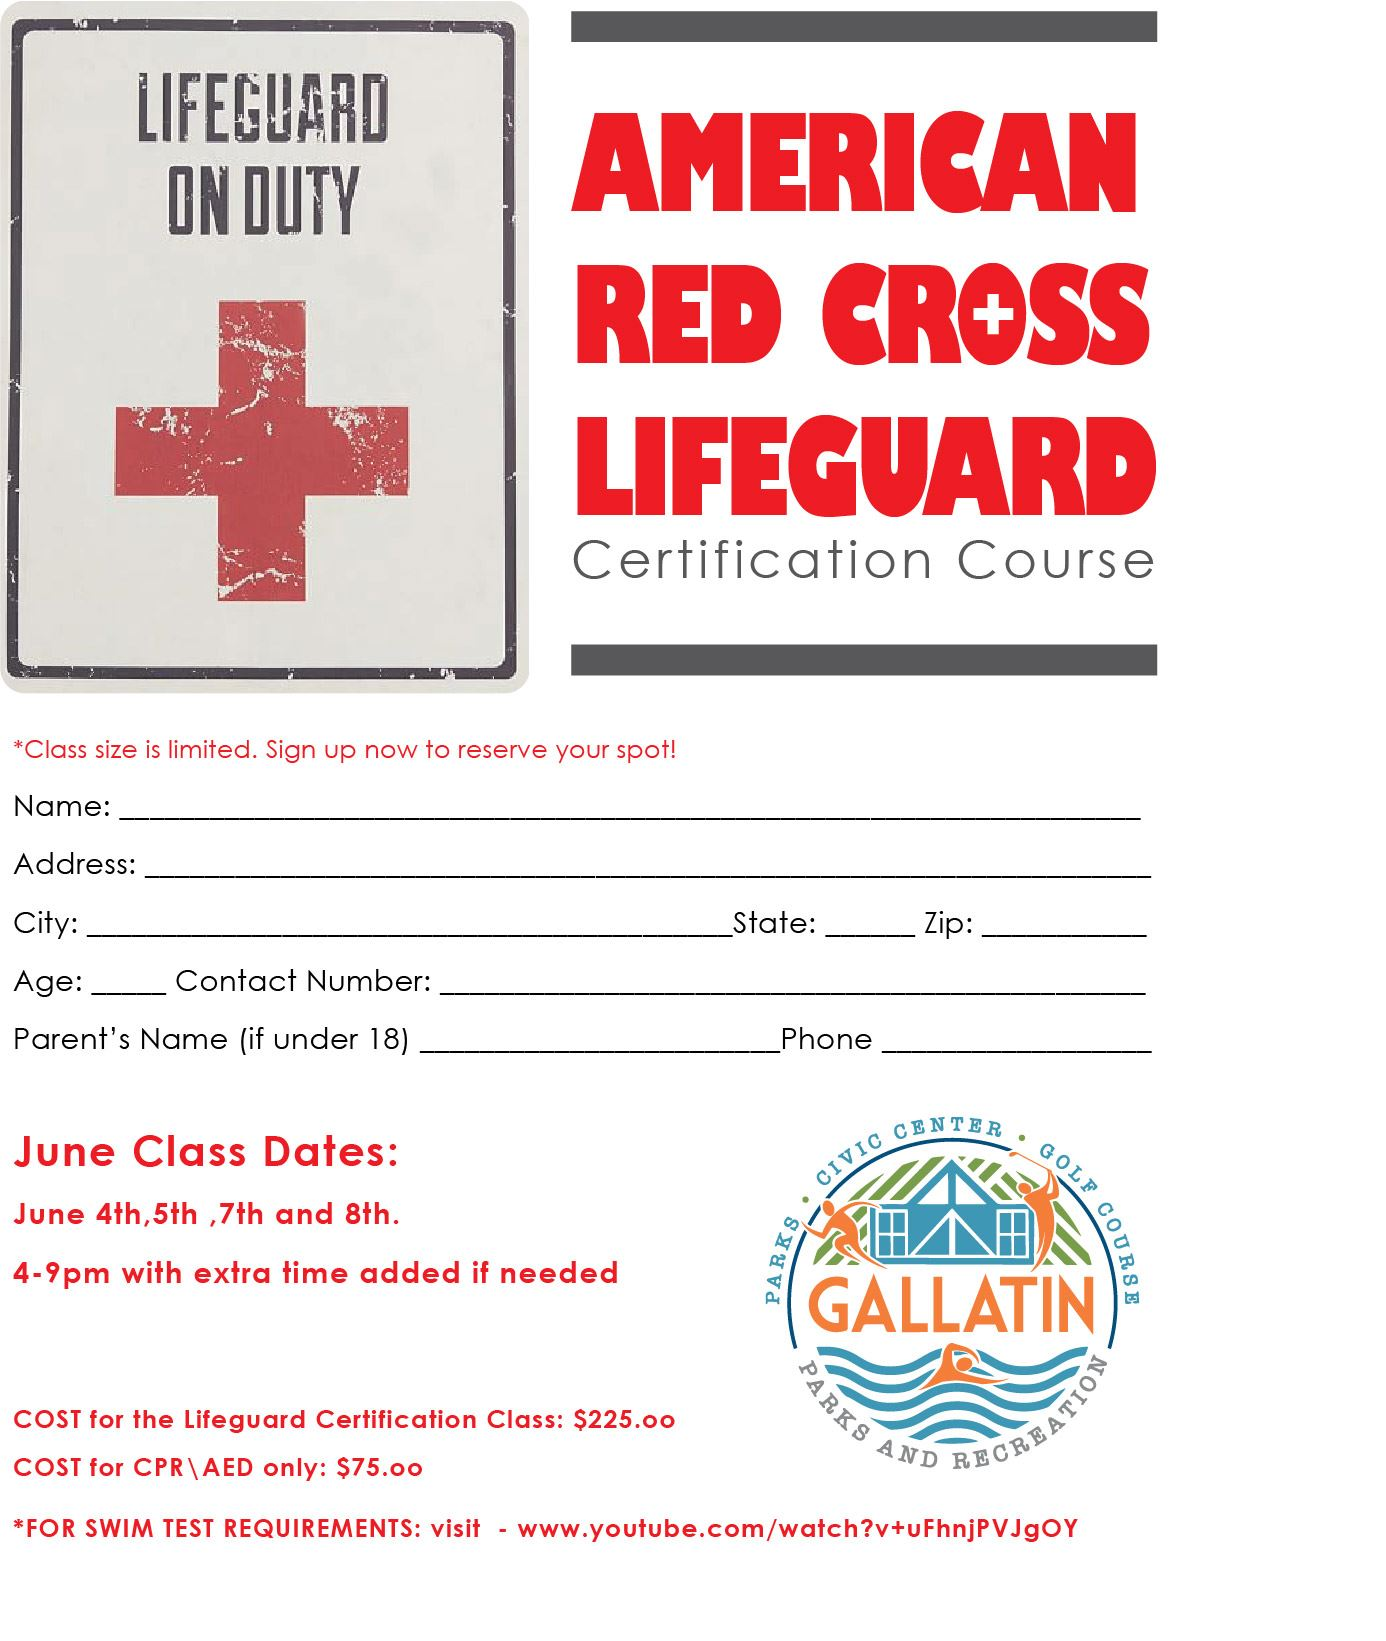 Lifeguard cert. form_2019JUNE